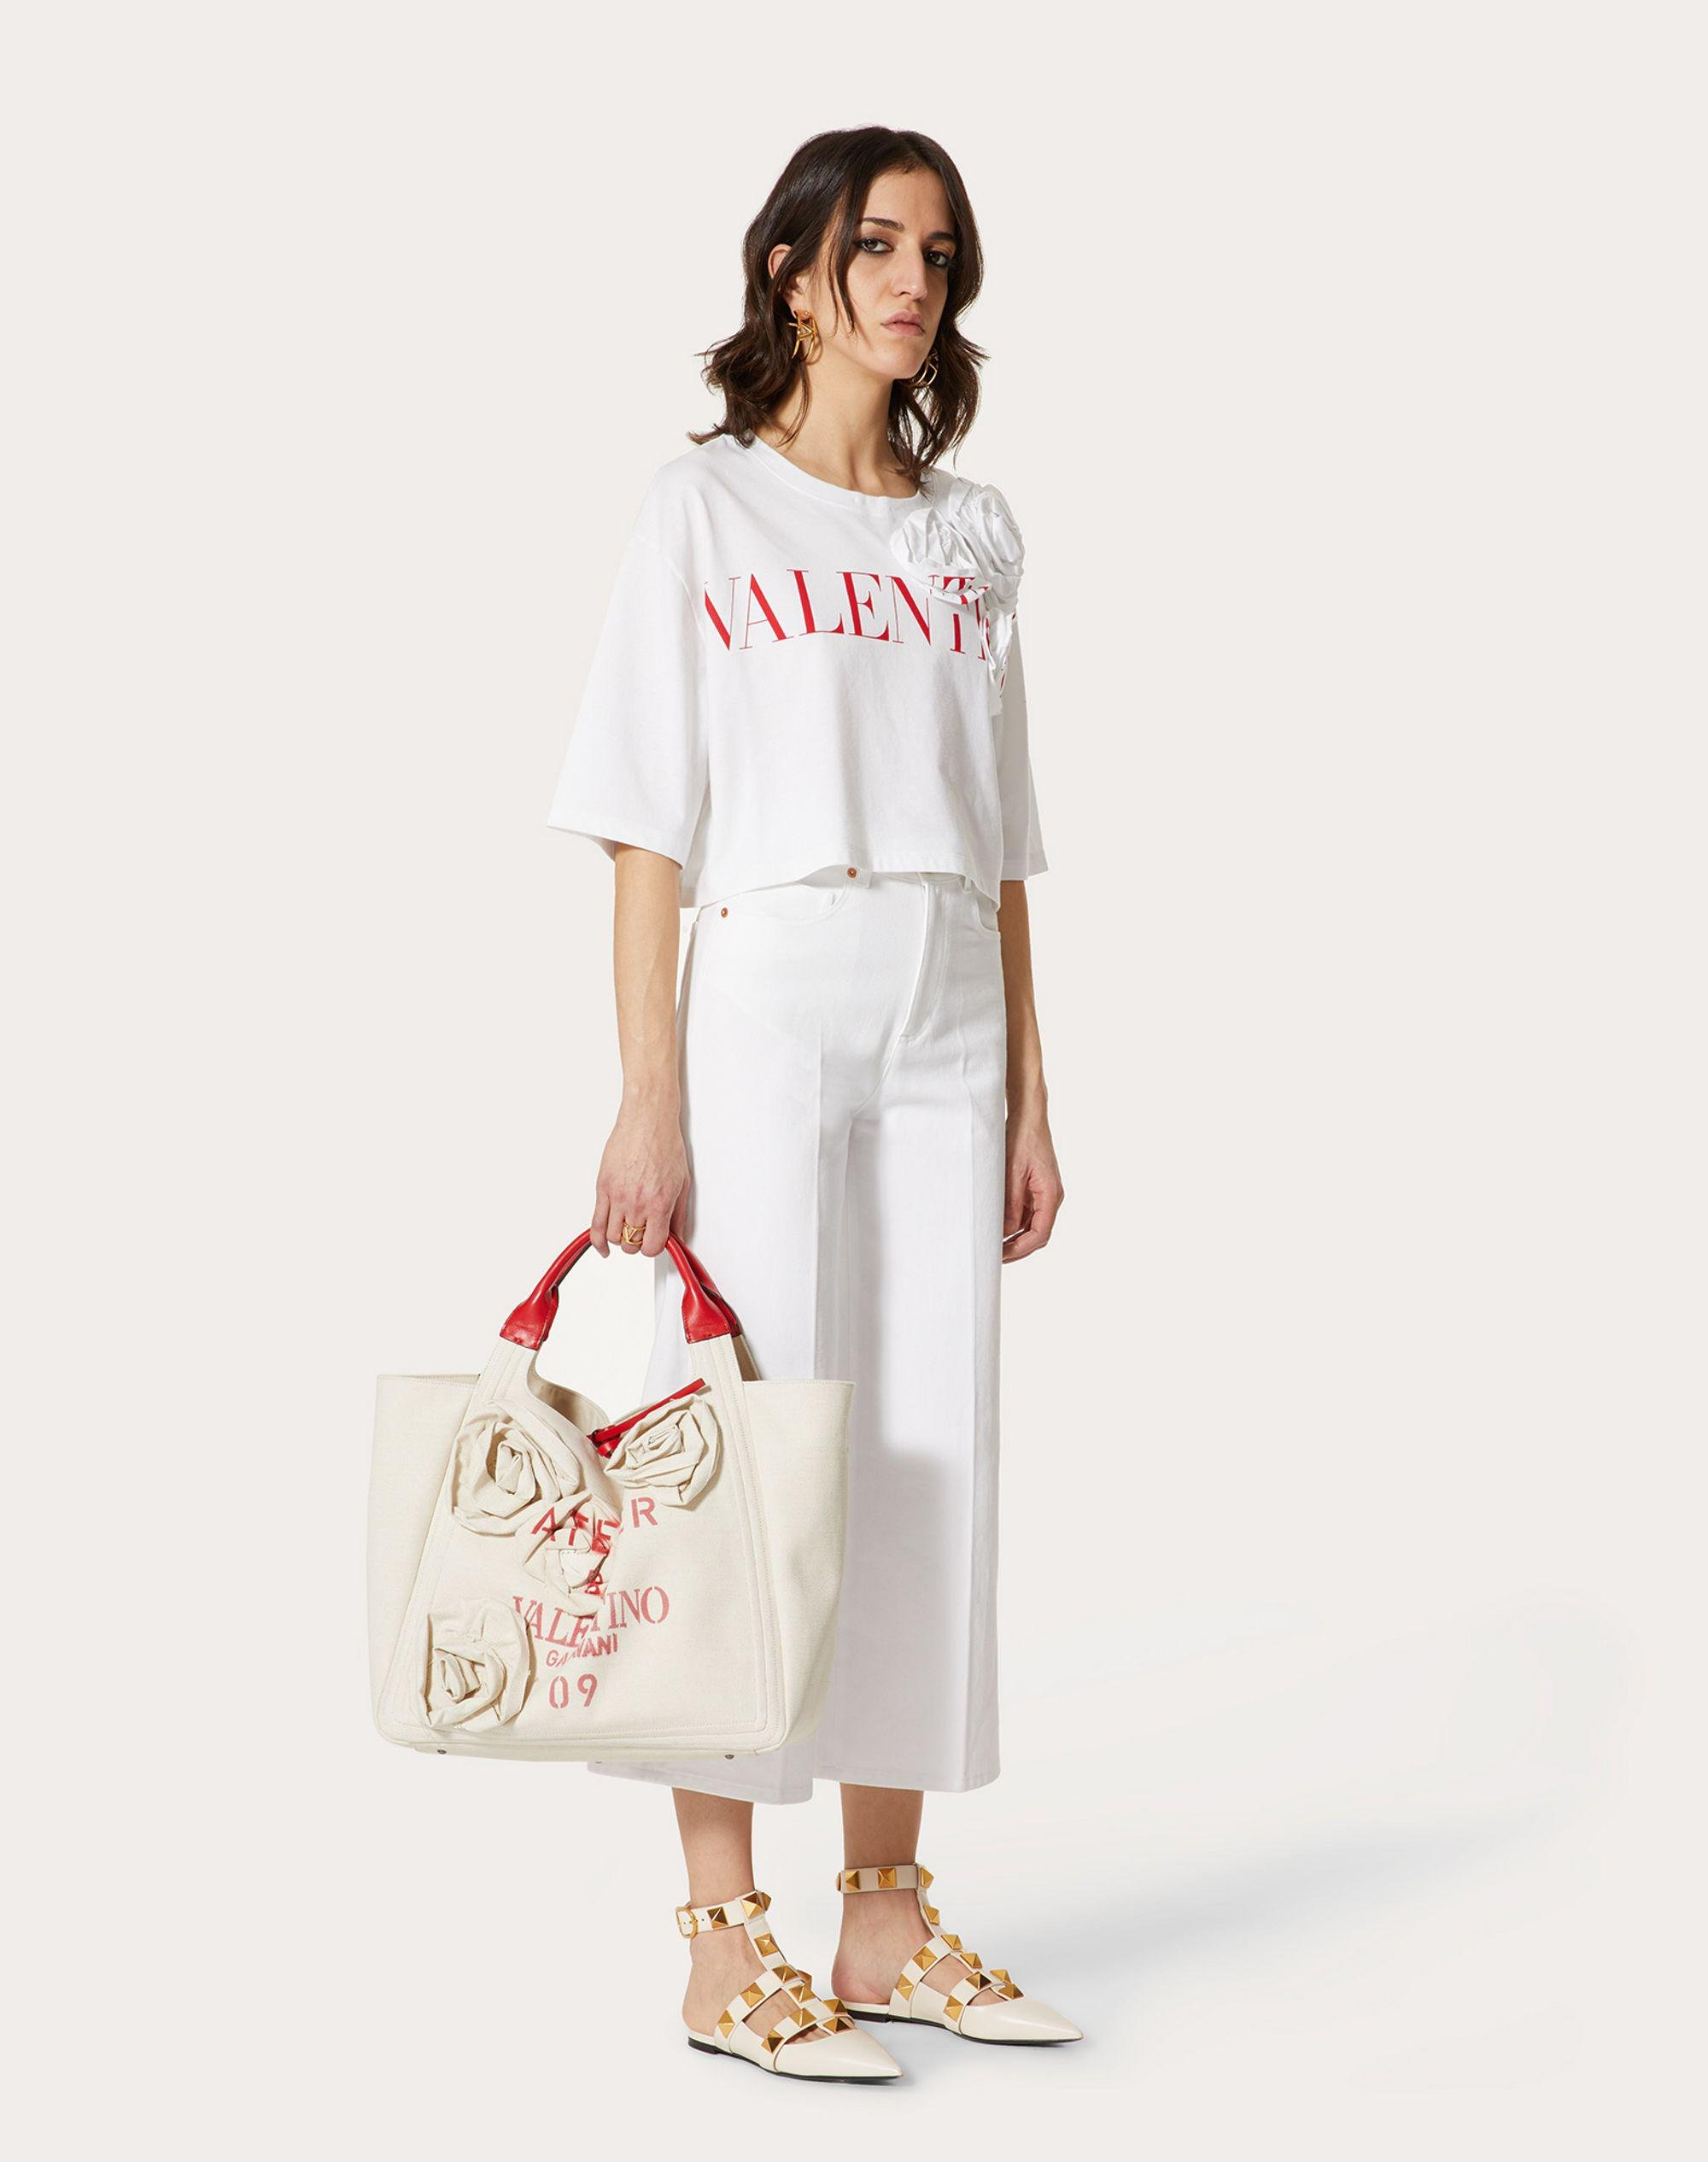 VALENTINO ROSE BLOSSOM T-SHIRT IN JERSEY